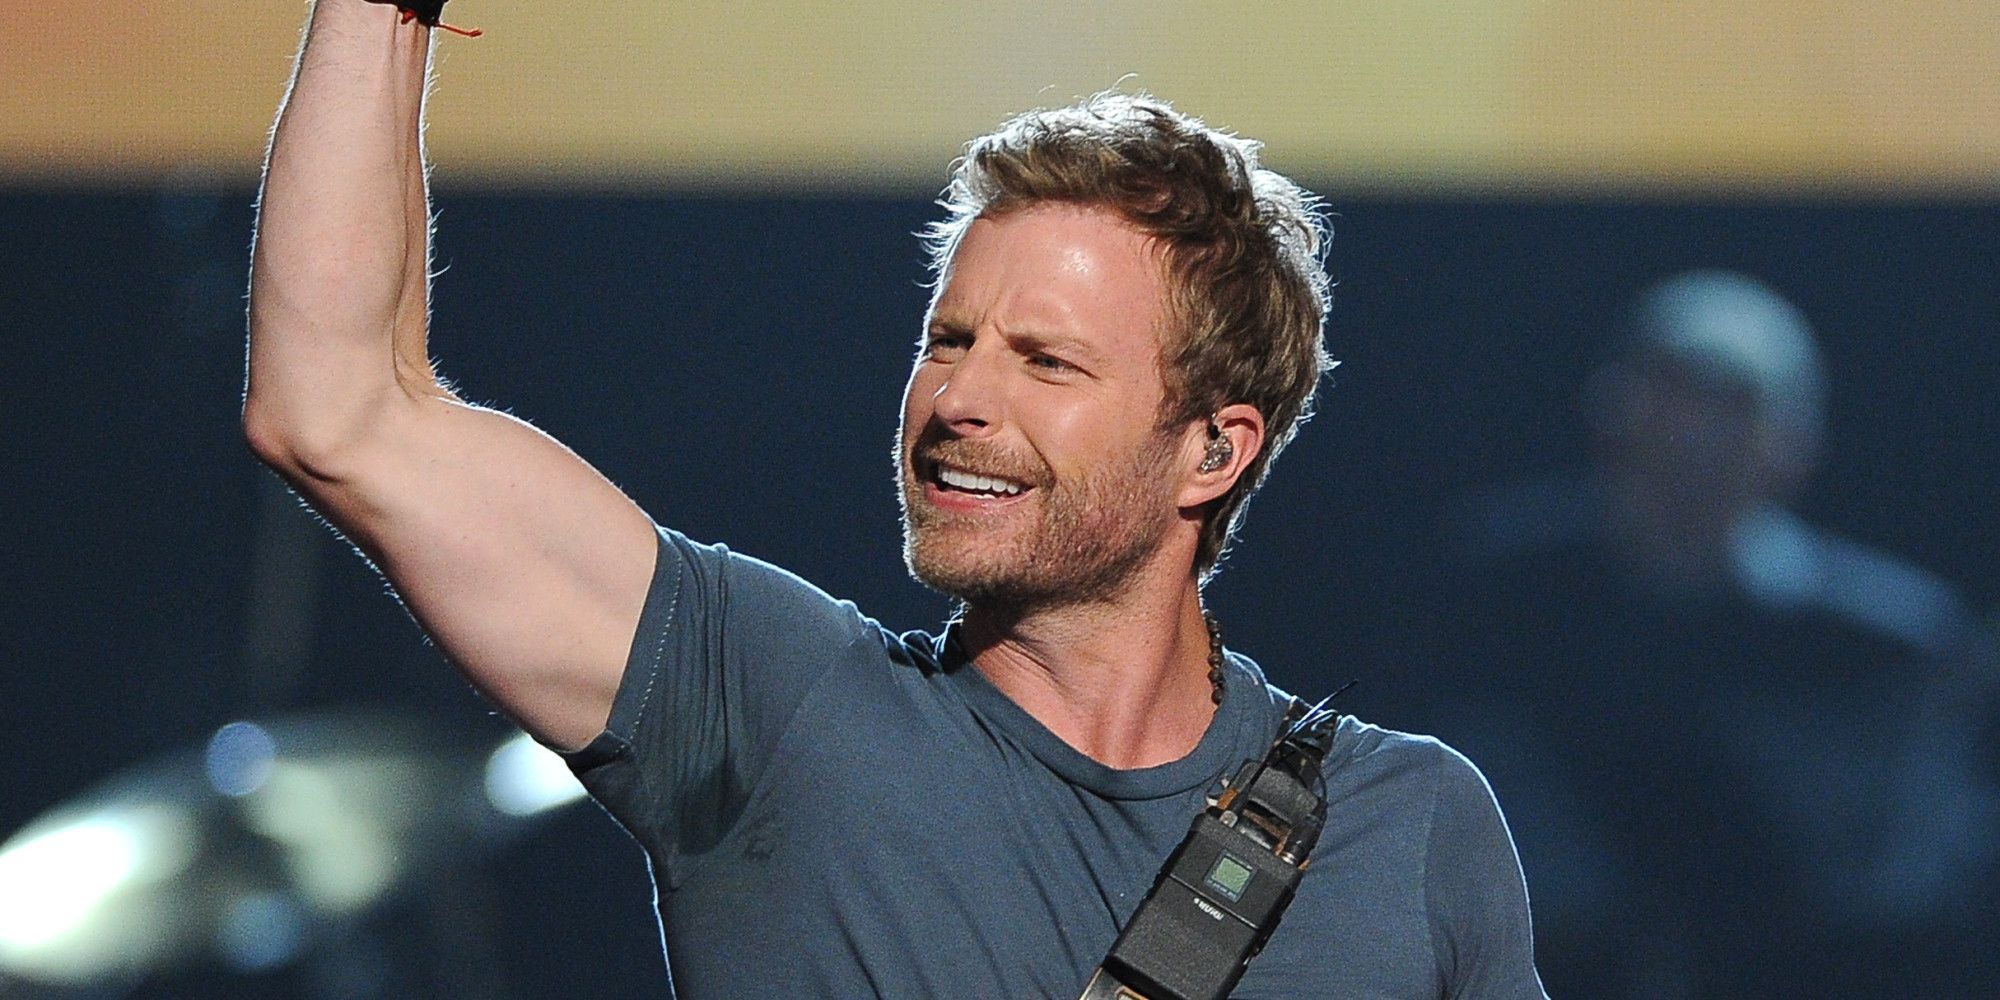 dierks bentley is hoping his lucky number wins him some acm awards